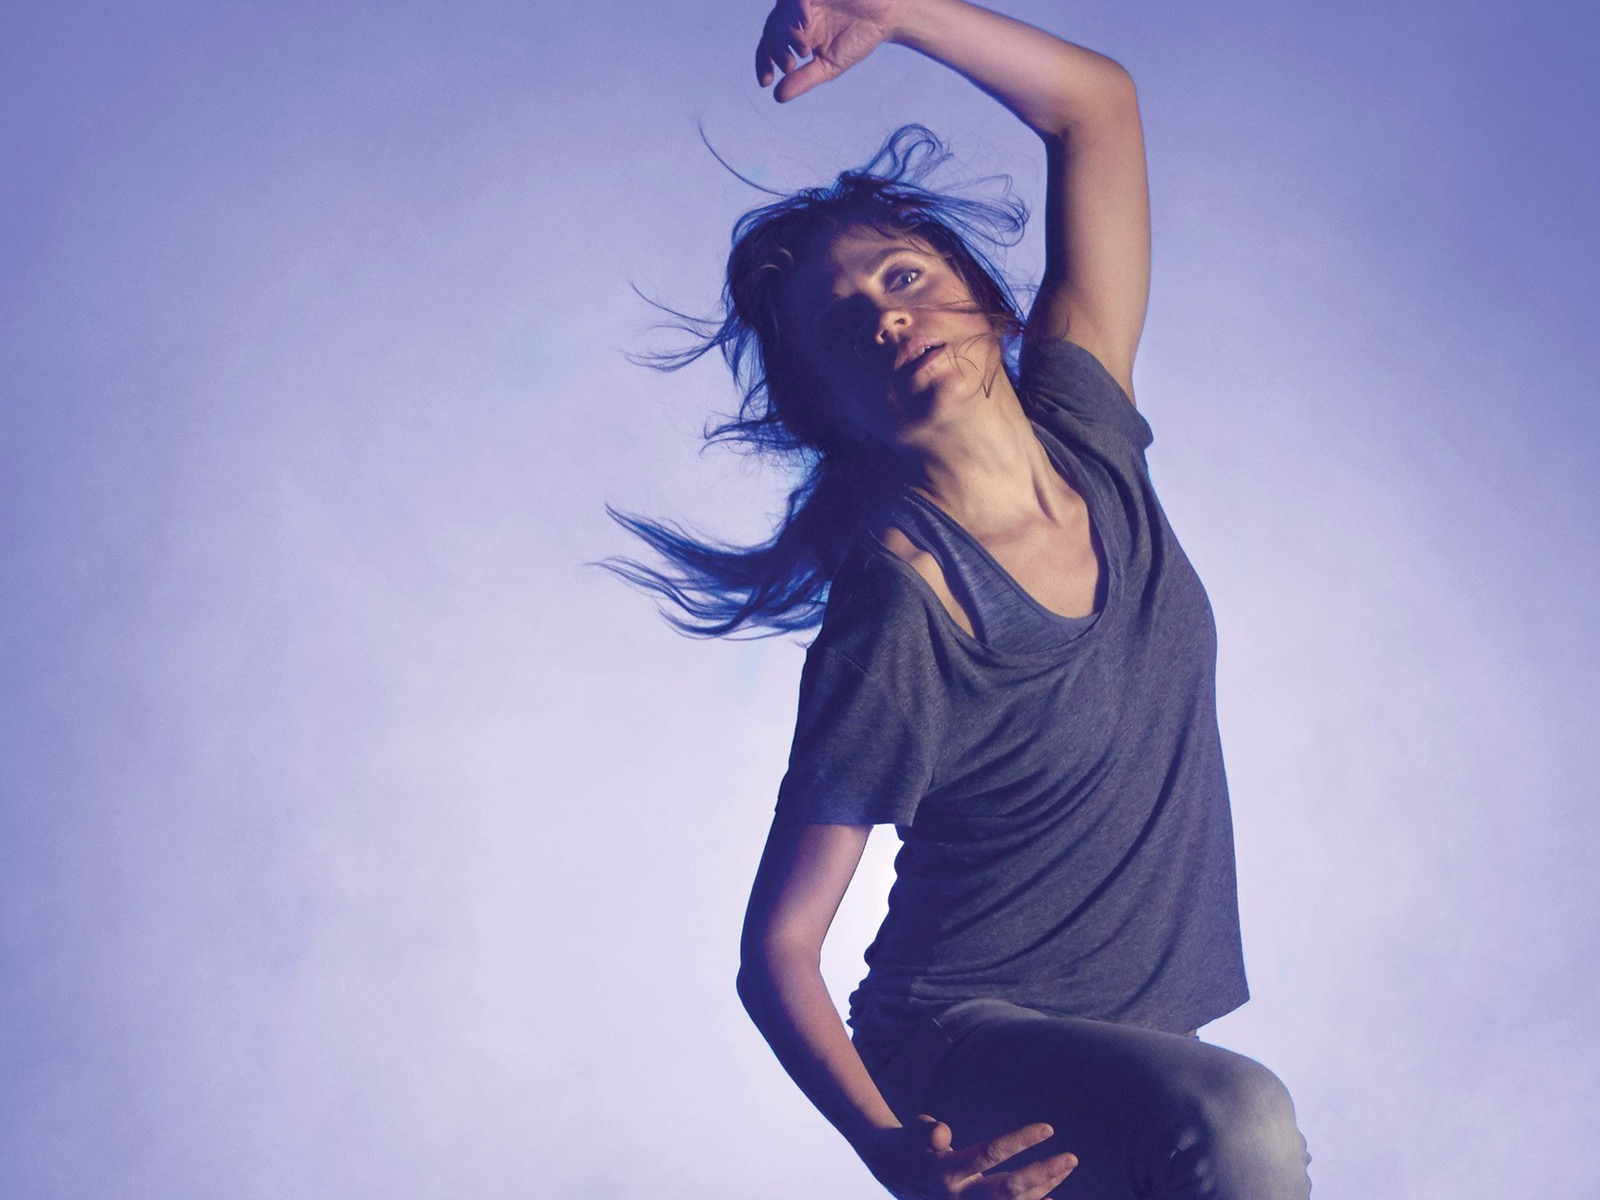 A woman dances, as if in a trance, across a background of blue light and smoke.